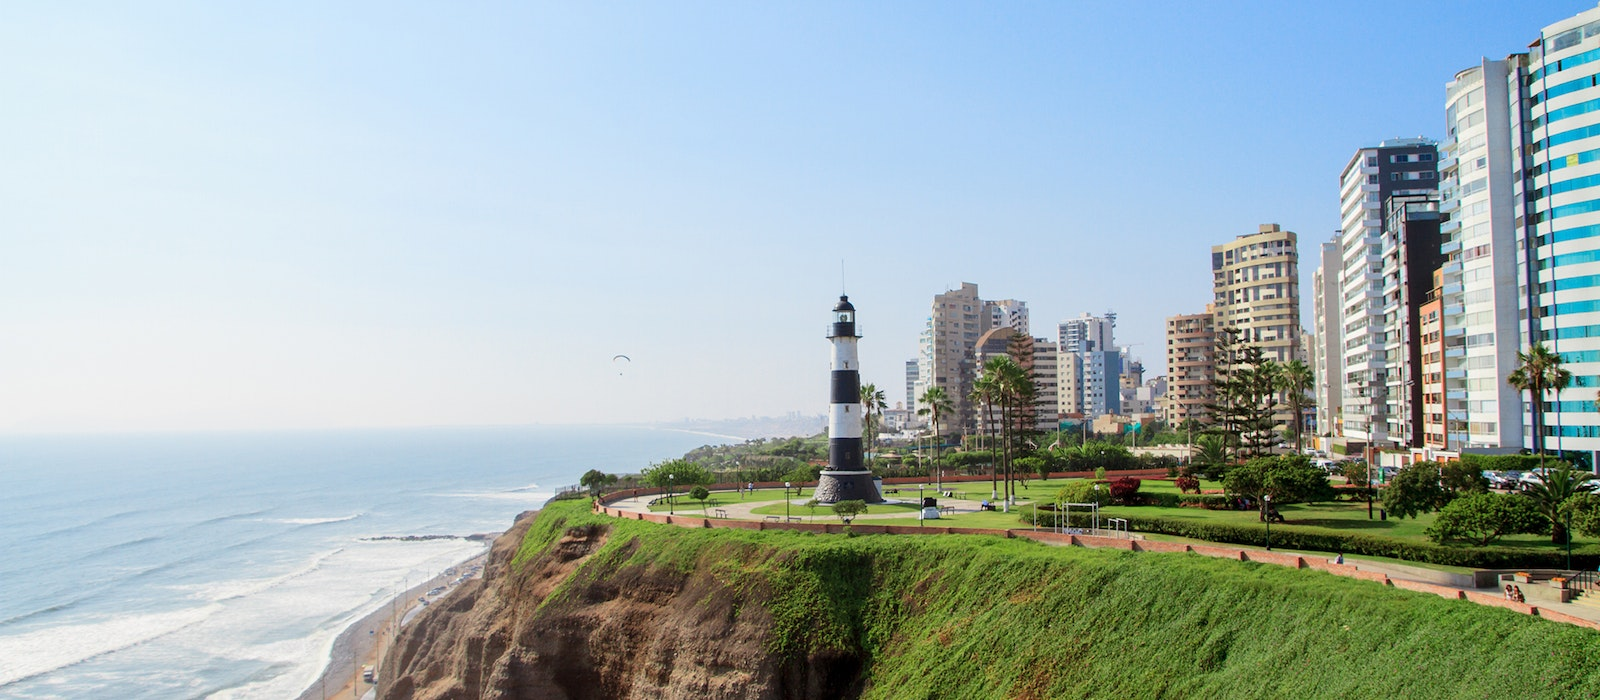 Find innovative new restaurants and great views in Lima's Miraflores neighborhood.